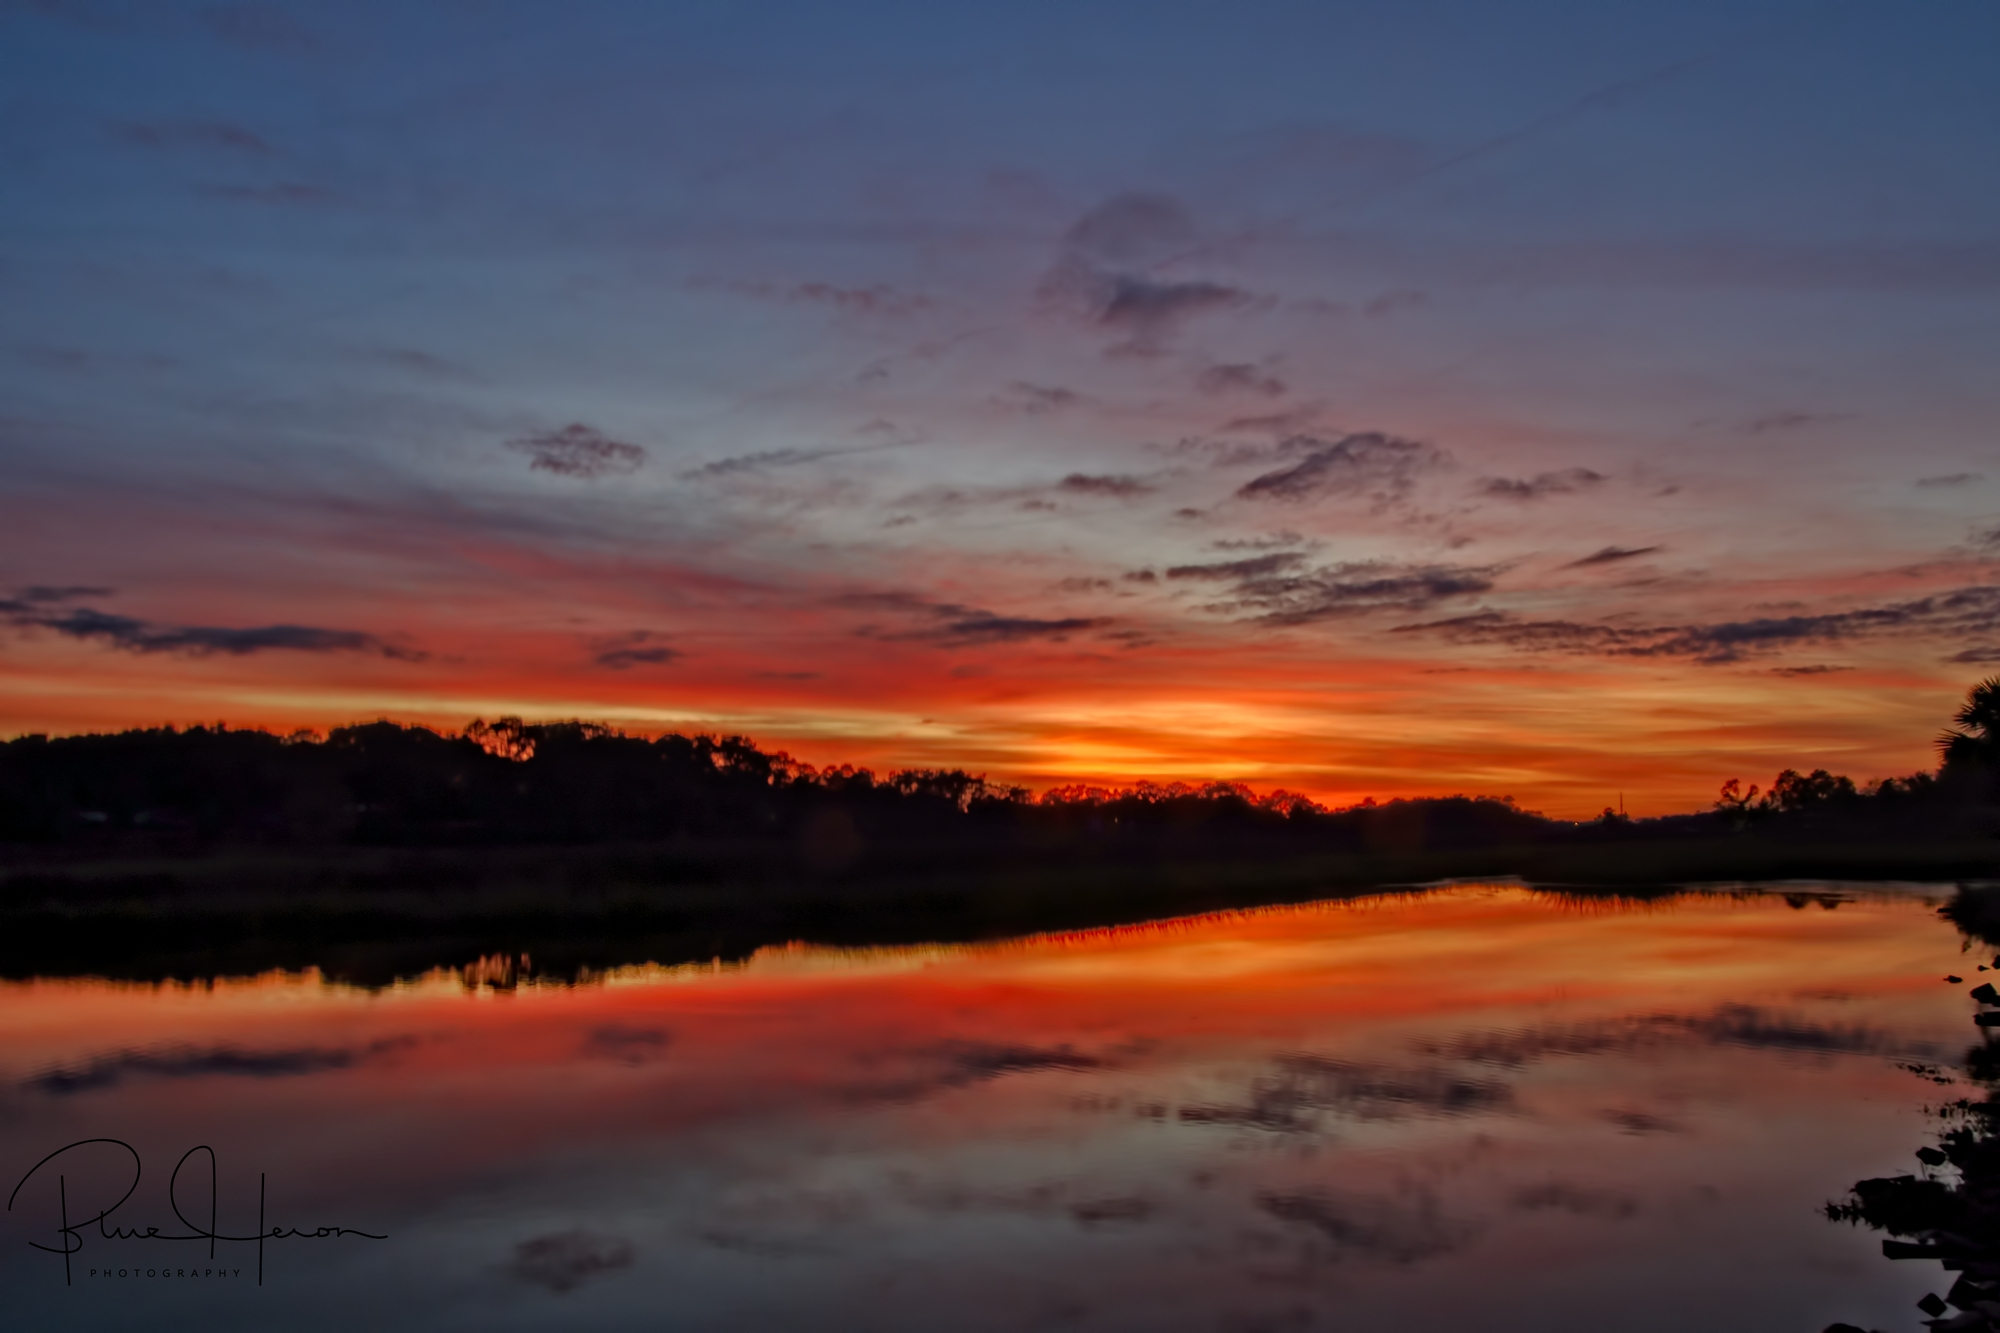 Red sky at night….sailors delight…what a beautiful evening glow on the Broward..and there was evening..